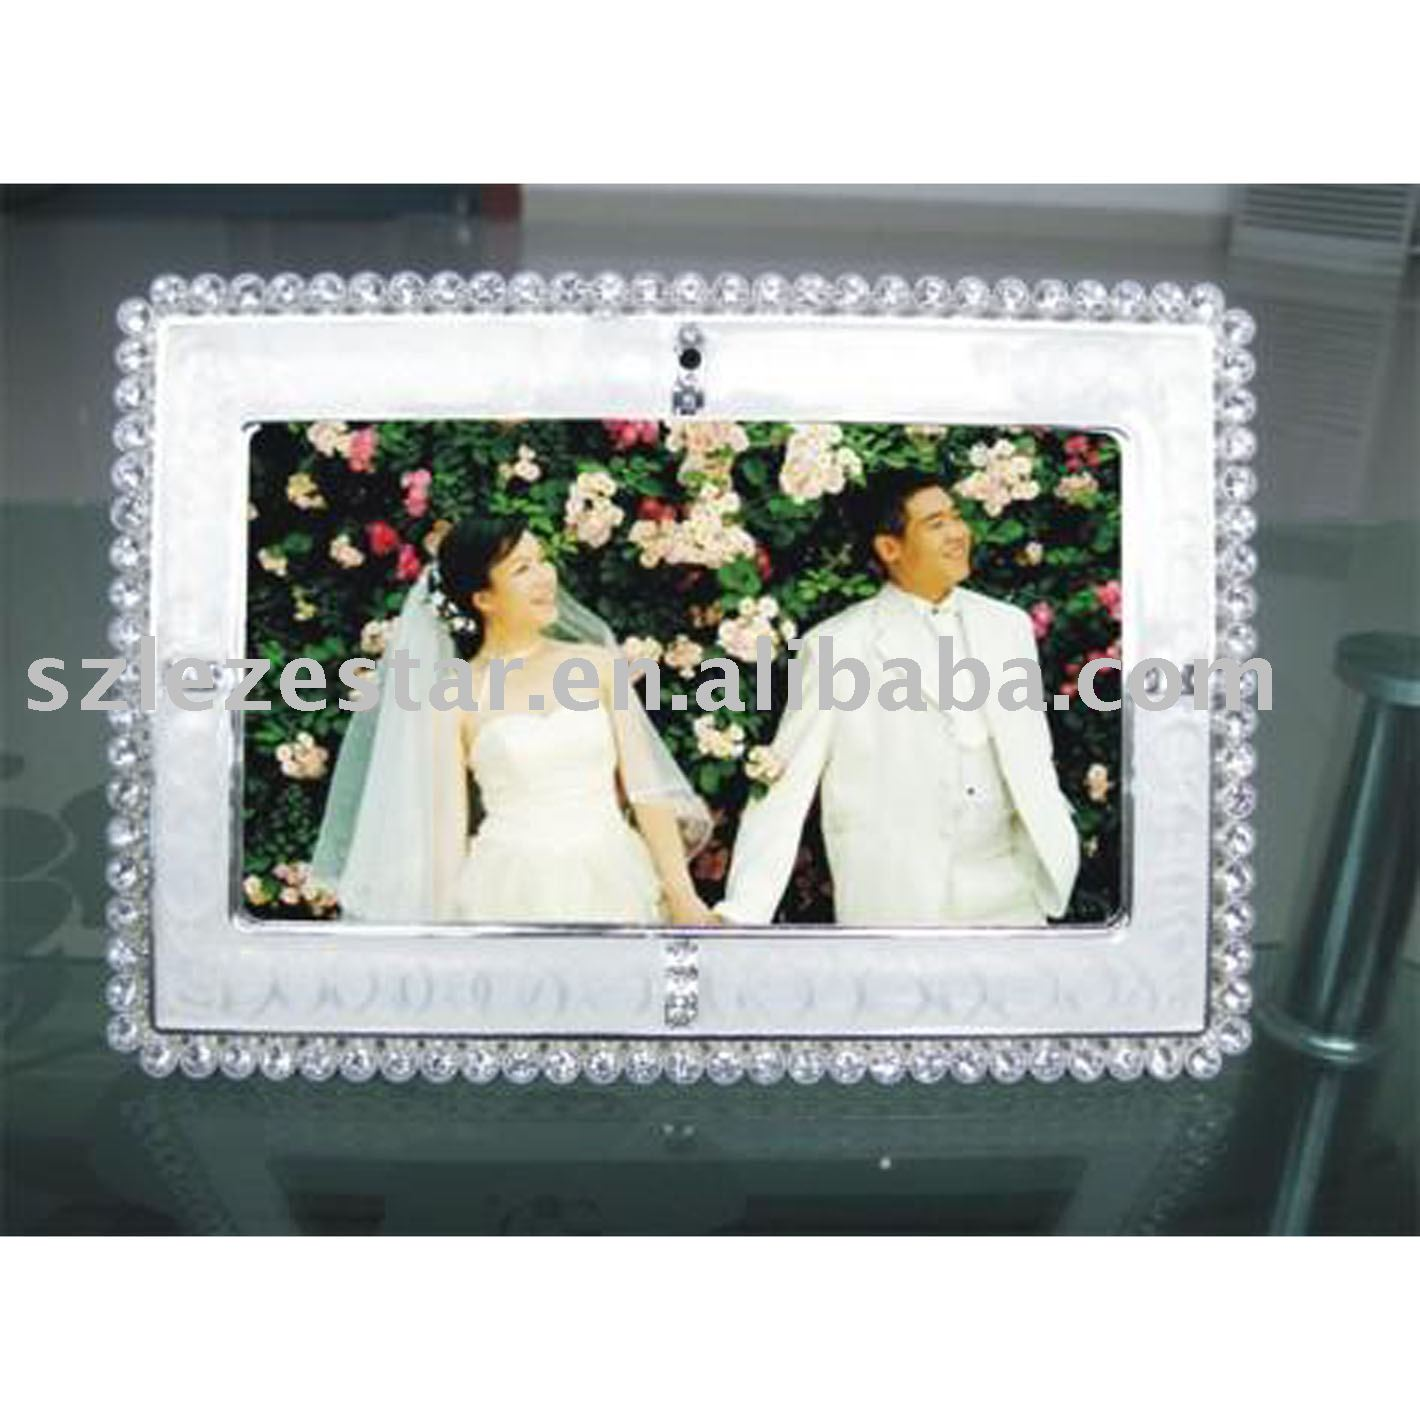 wedding digital frame,LCD digital photo frame, 7inch digital photo frame,